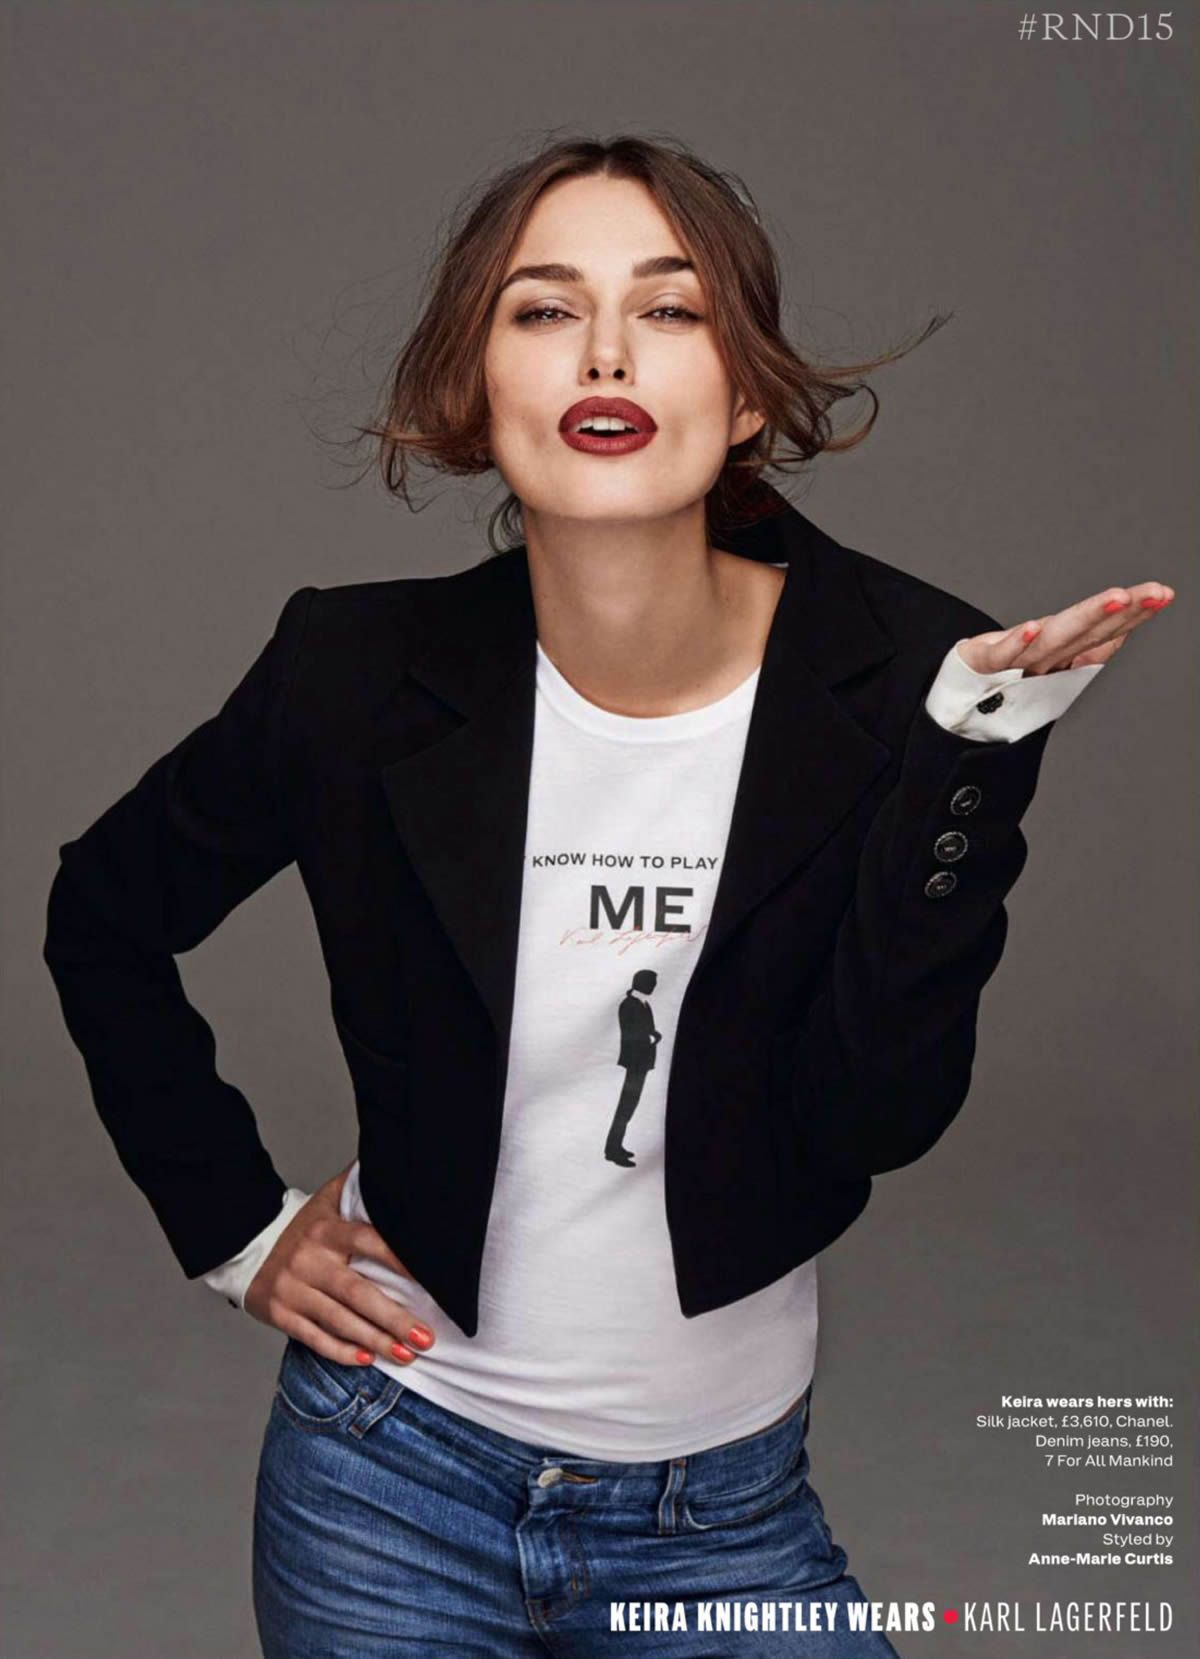 Keira Knightley in Chanel by Mariano Vivanco for Elle UK